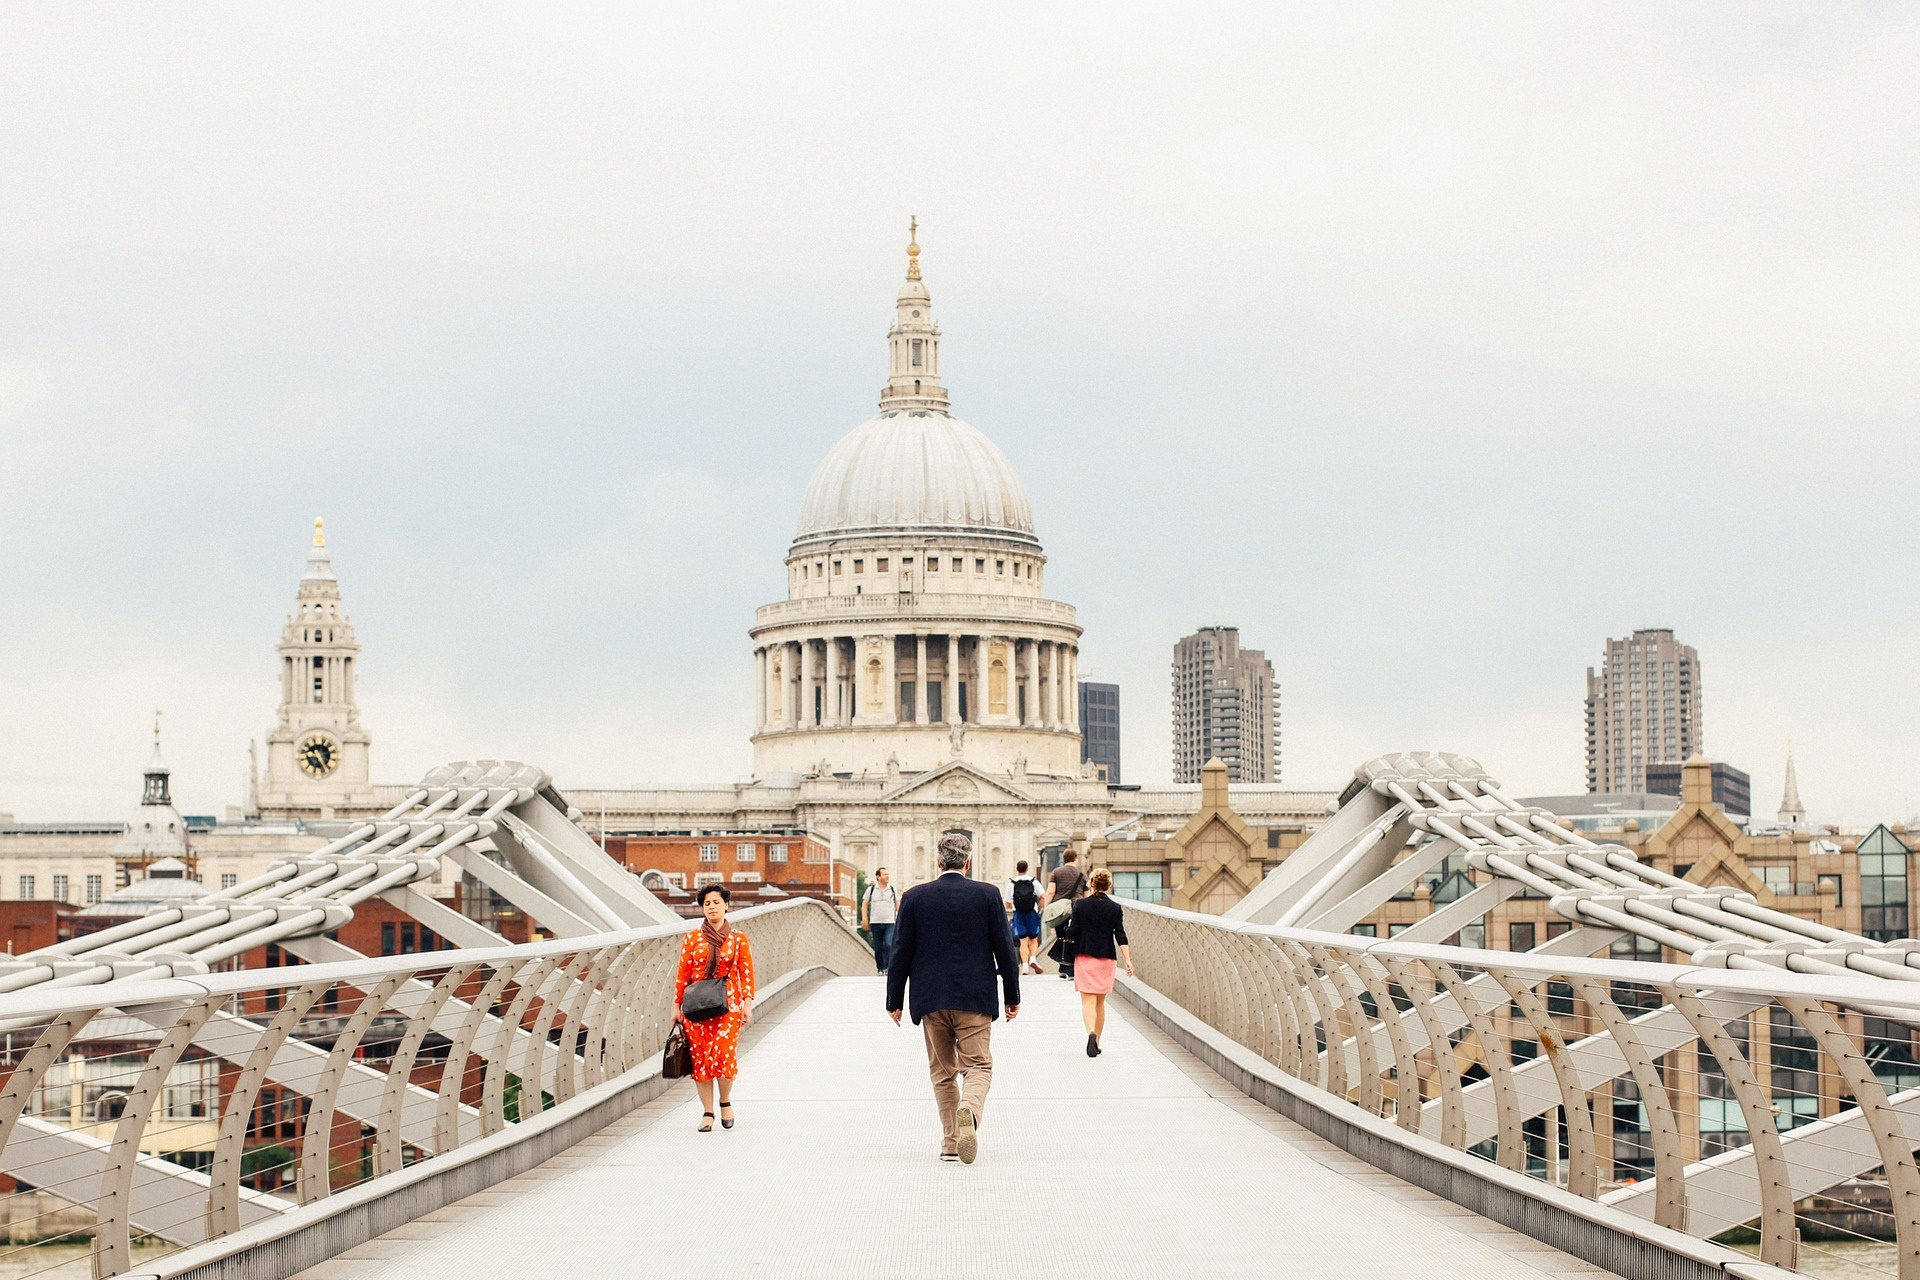 Top sights in Central London - St Pauls Cathedral & Millenium Bridge